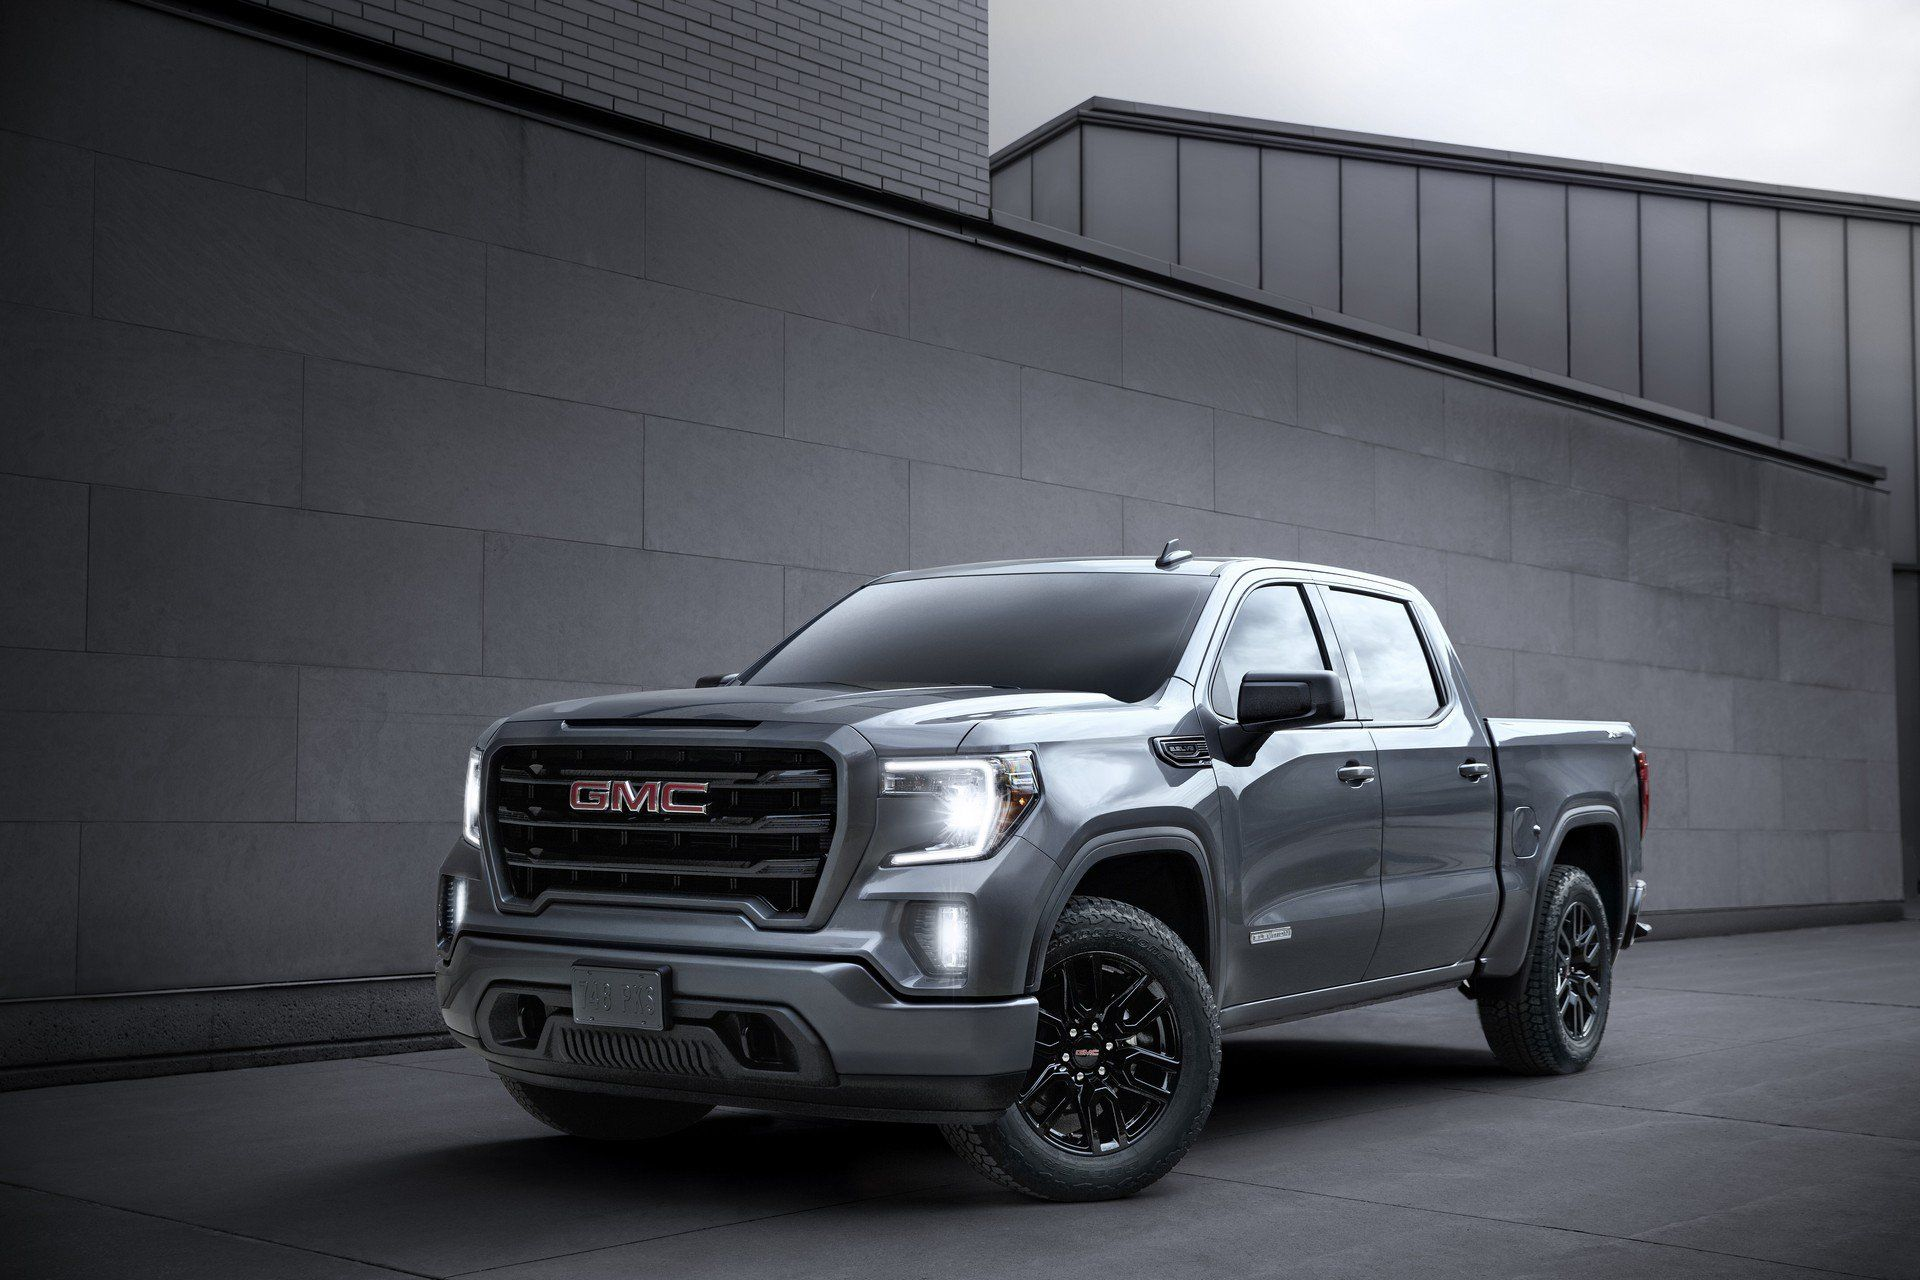 2020 Gmc Sierra 1500 Arrives With New Tech Updated At4 Carbonpro Edition Carscoops Gmc Sierra Gmc Sierra 1500 Gmc